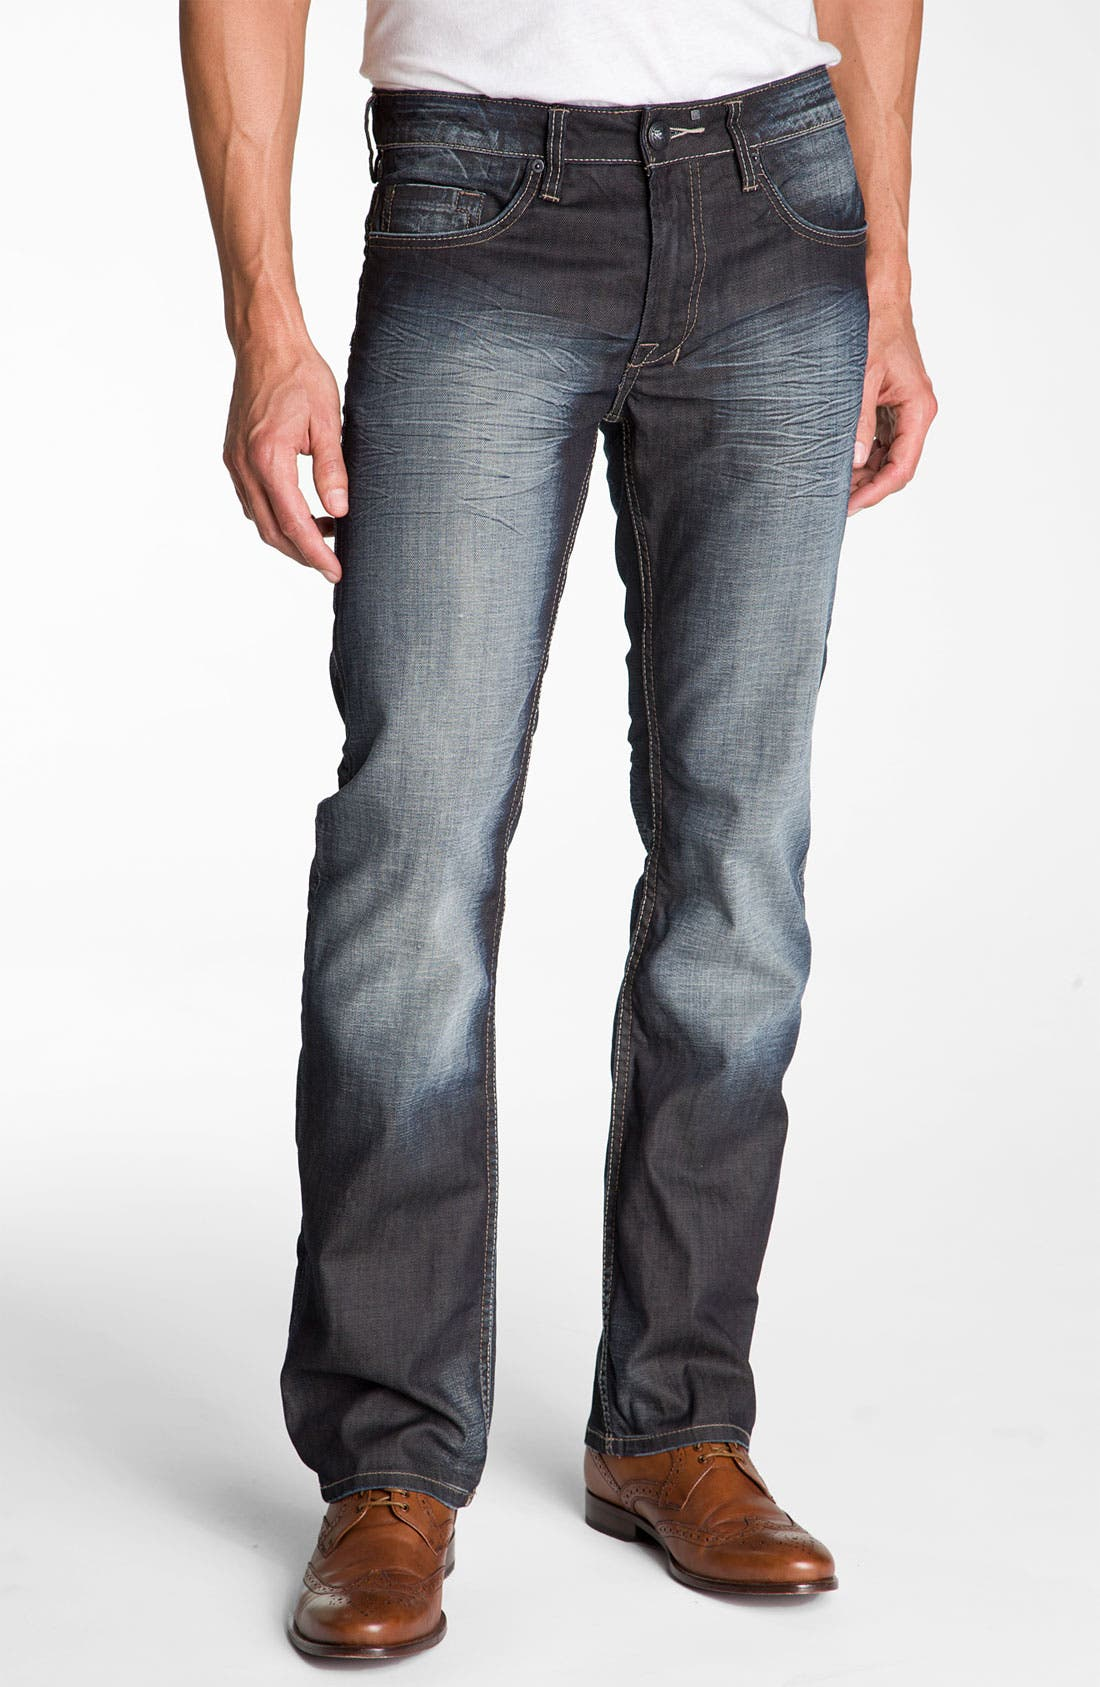 Alternate Image 1 Selected - Buffalo Jeans 'Six' Slim Straight Leg Jeans (Vintage Stone)